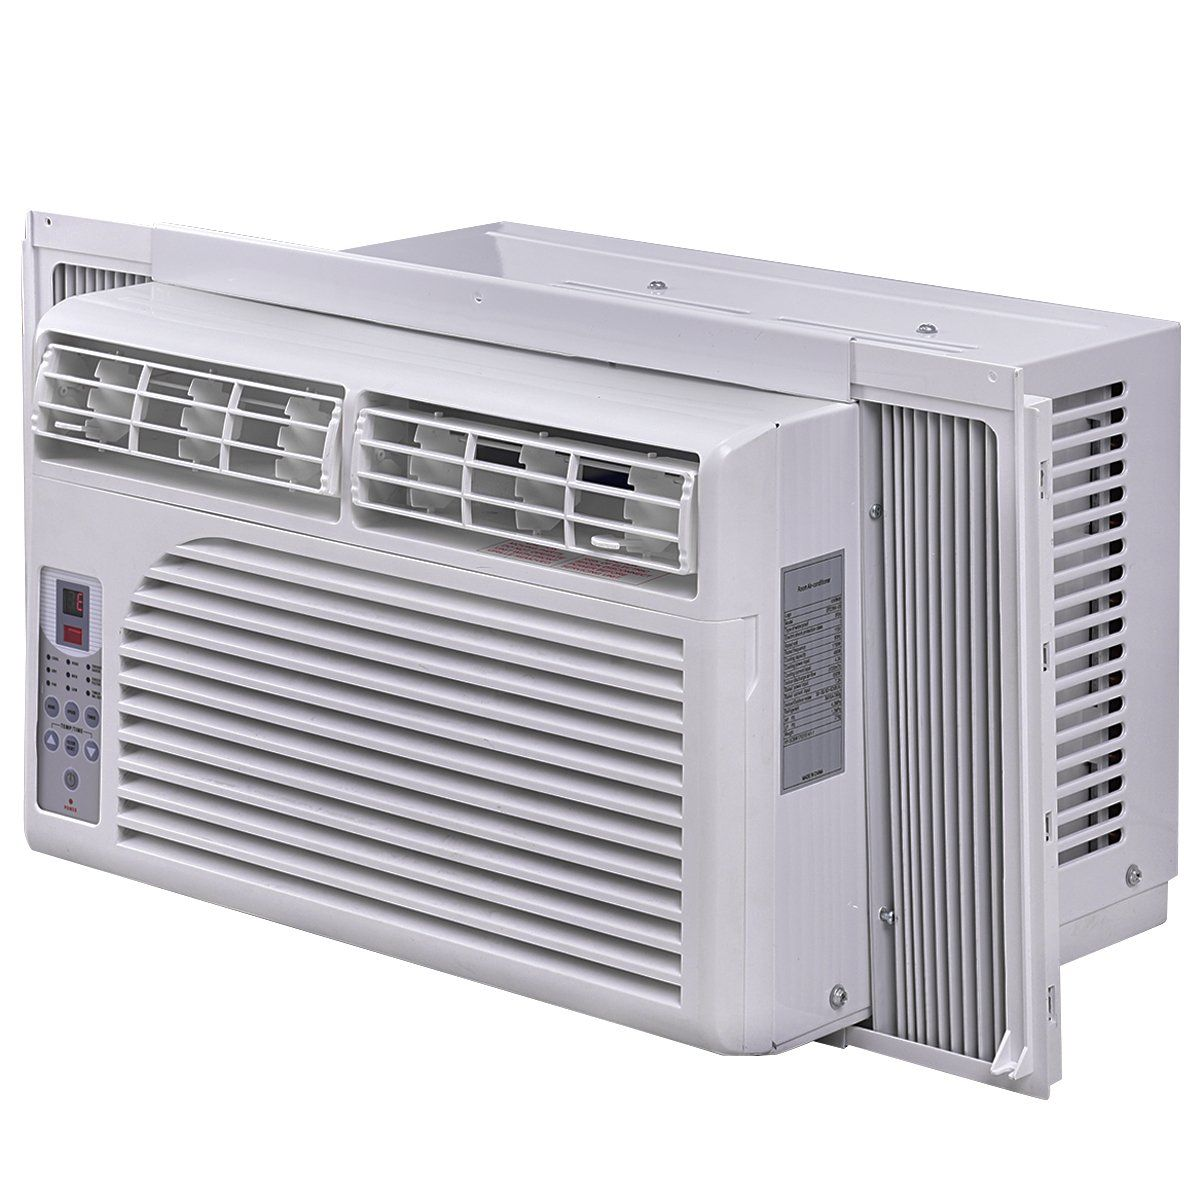 Costway Cold Air Conditioner Windowmounted Compact W Remote Control 115v White 8000 B High Efficiency Air Conditioner Portable Air Conditioner Air Conditioner